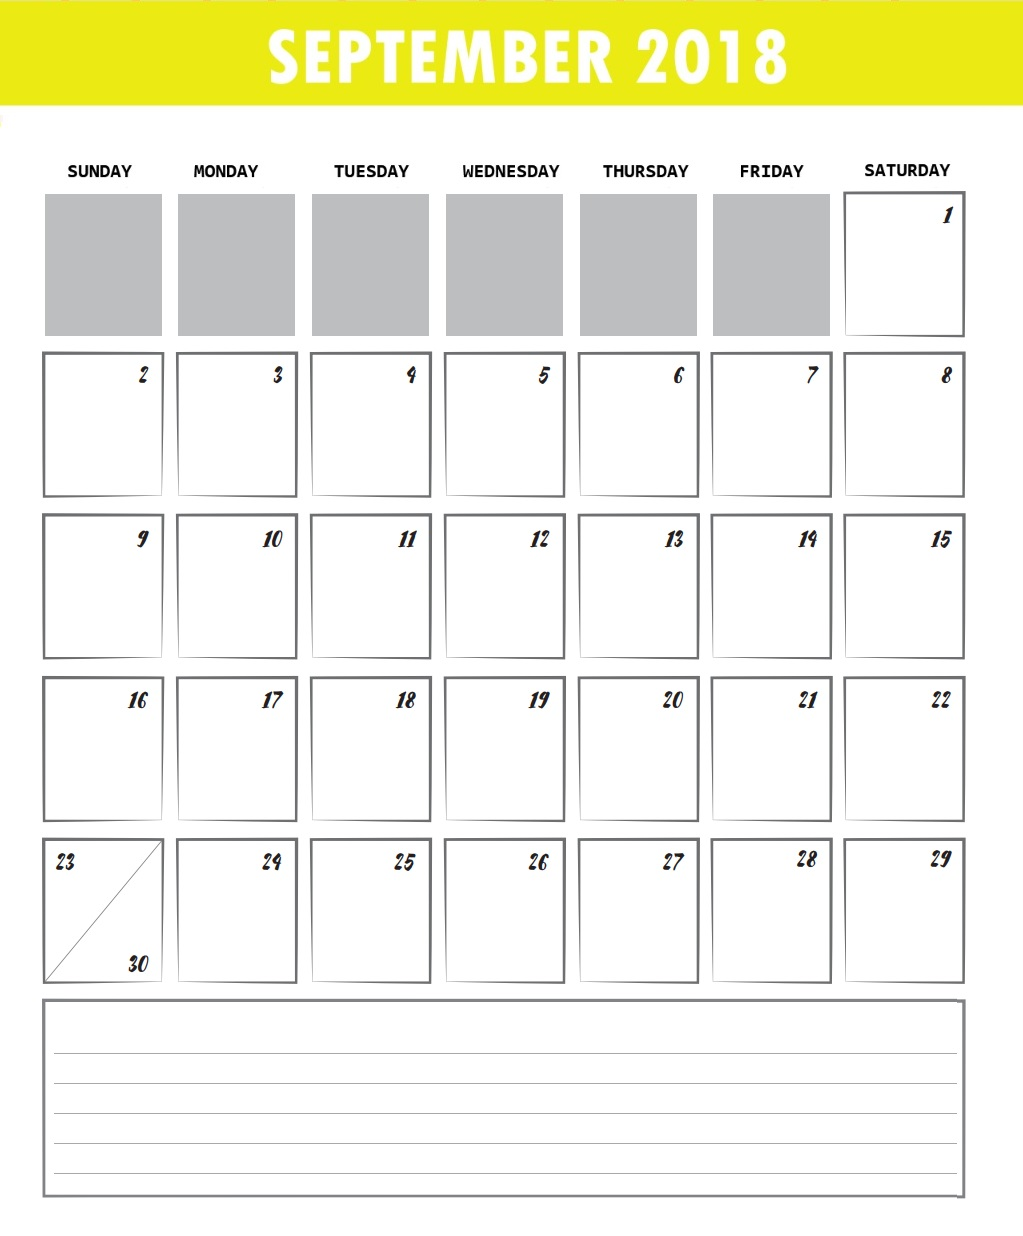 September Calendar 2018 Printable Excel